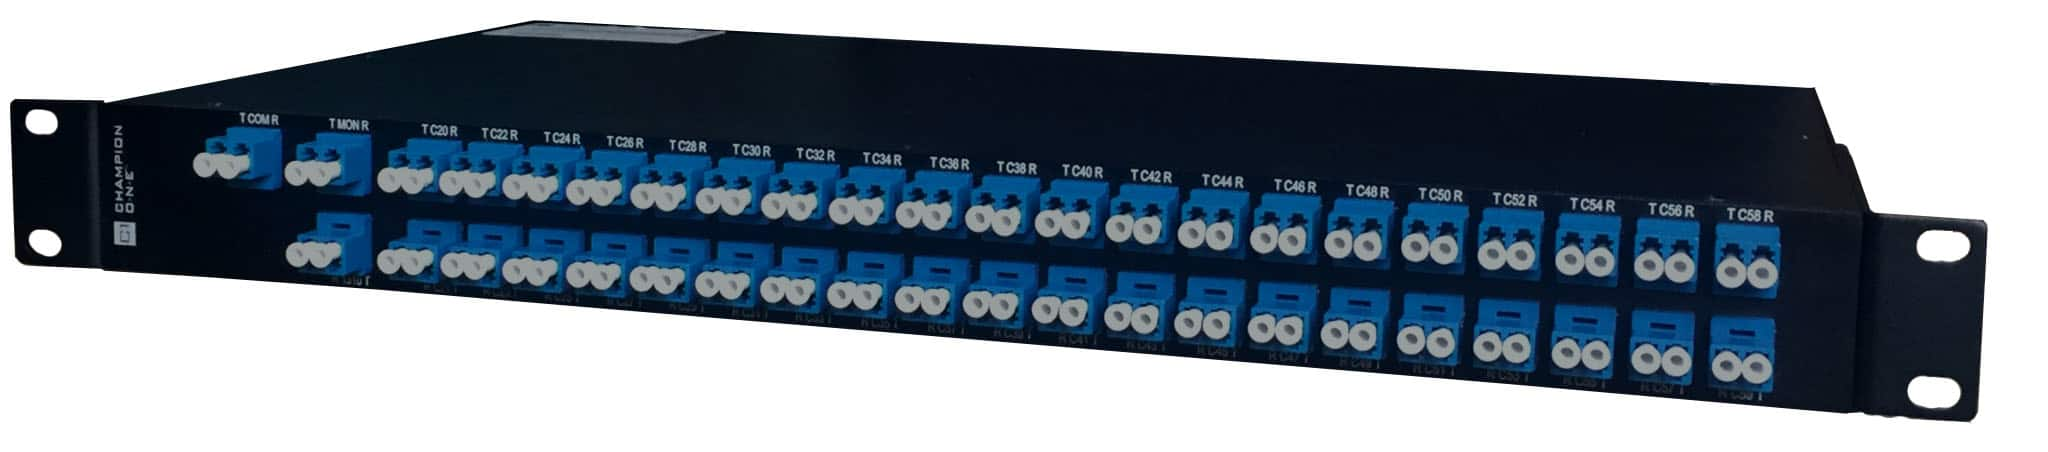 80 Channel/40 Service Single Fiber DWDM Mux/Demux ITU ch. 20-59.5 – EAST